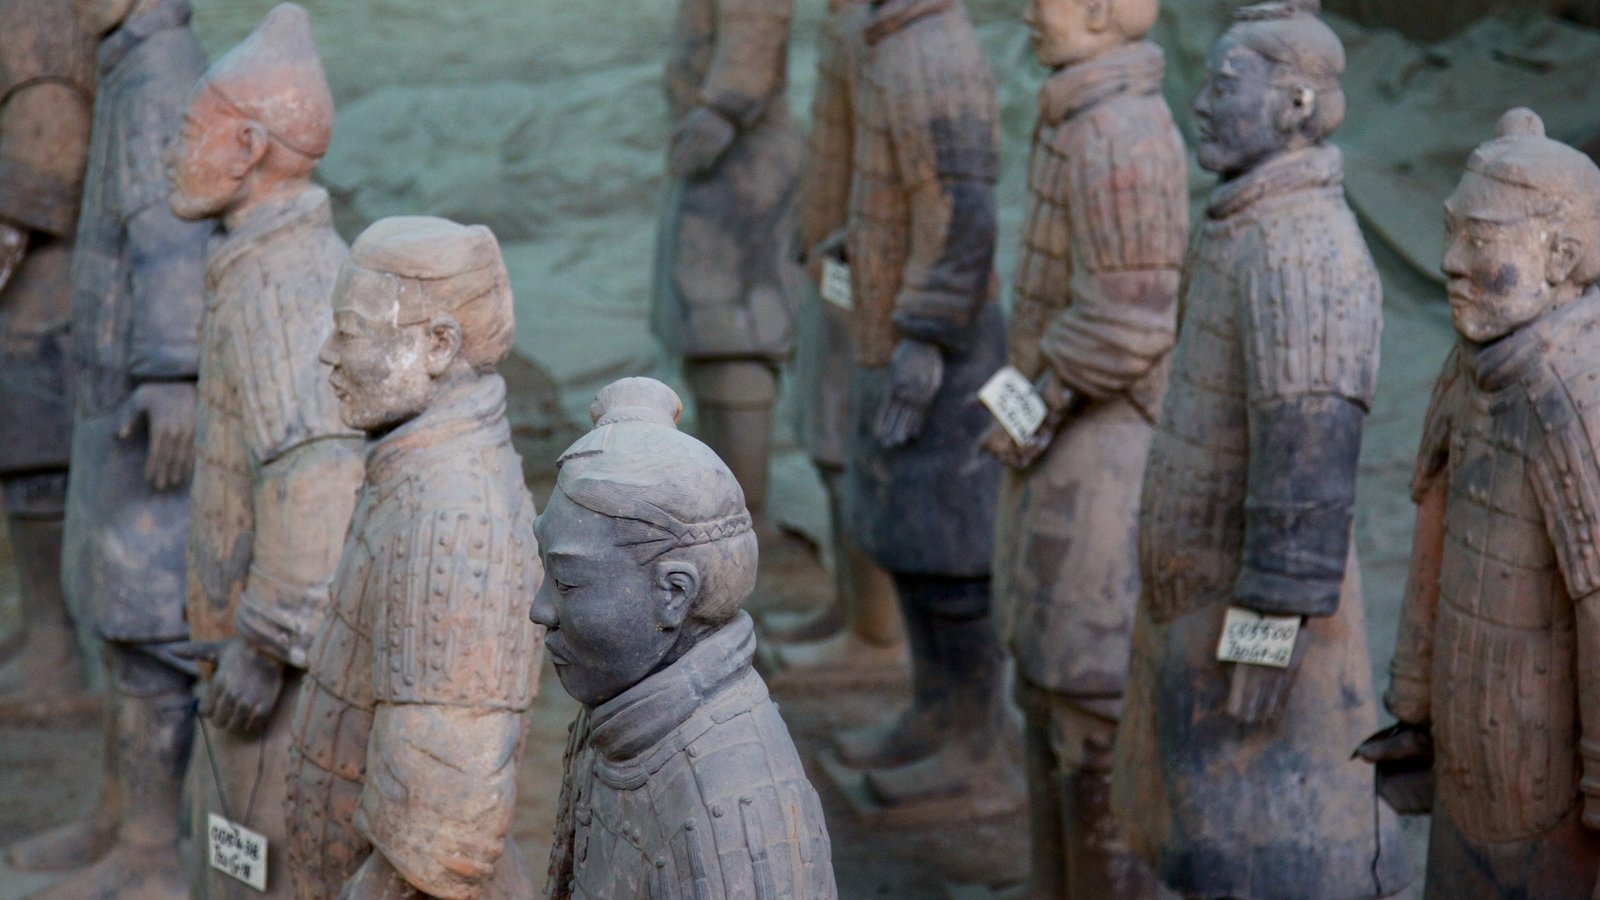 Terracota Army which includes a statue or sculpture and interior views